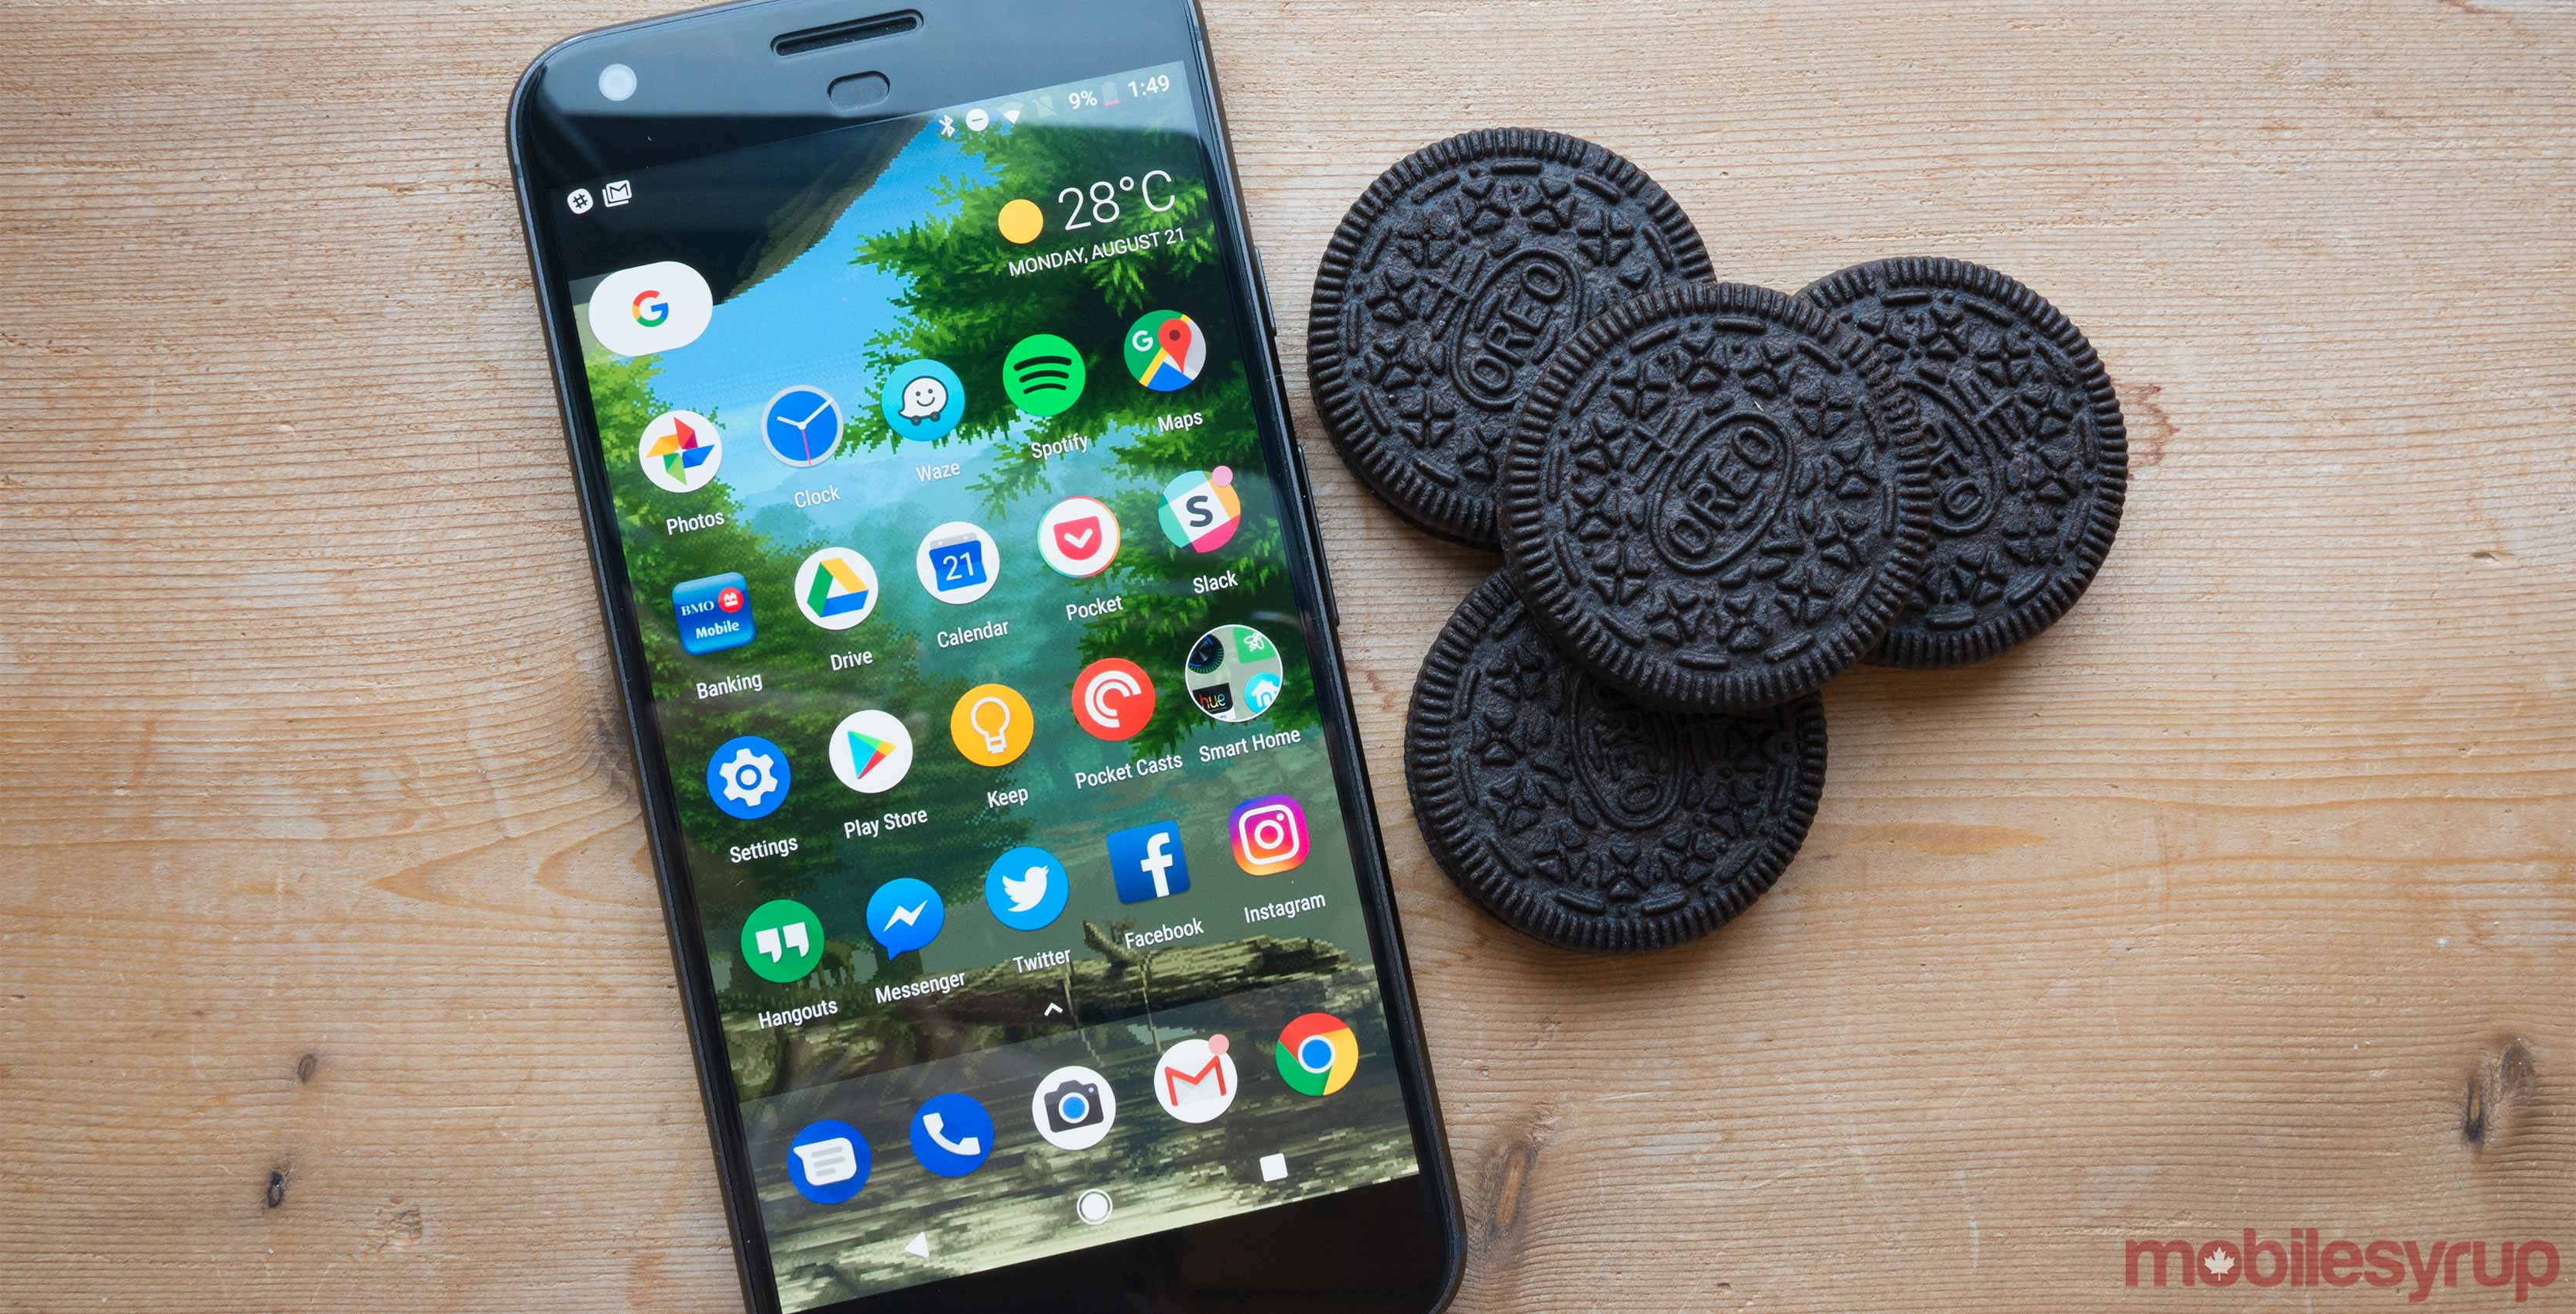 Android 8.0 Oreo is official: Here are the top features